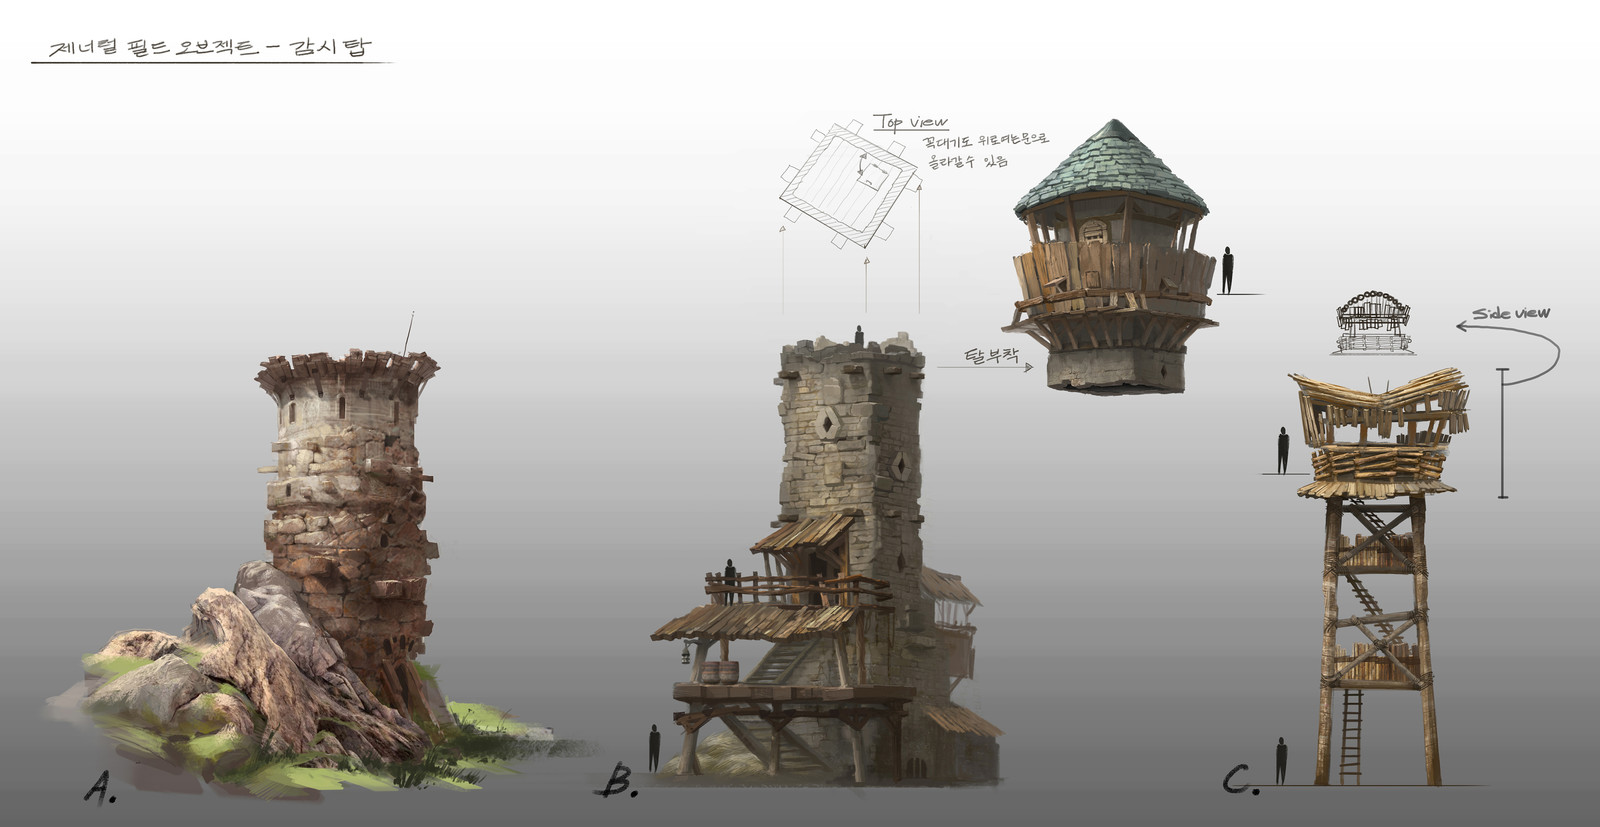 watch tower-old work